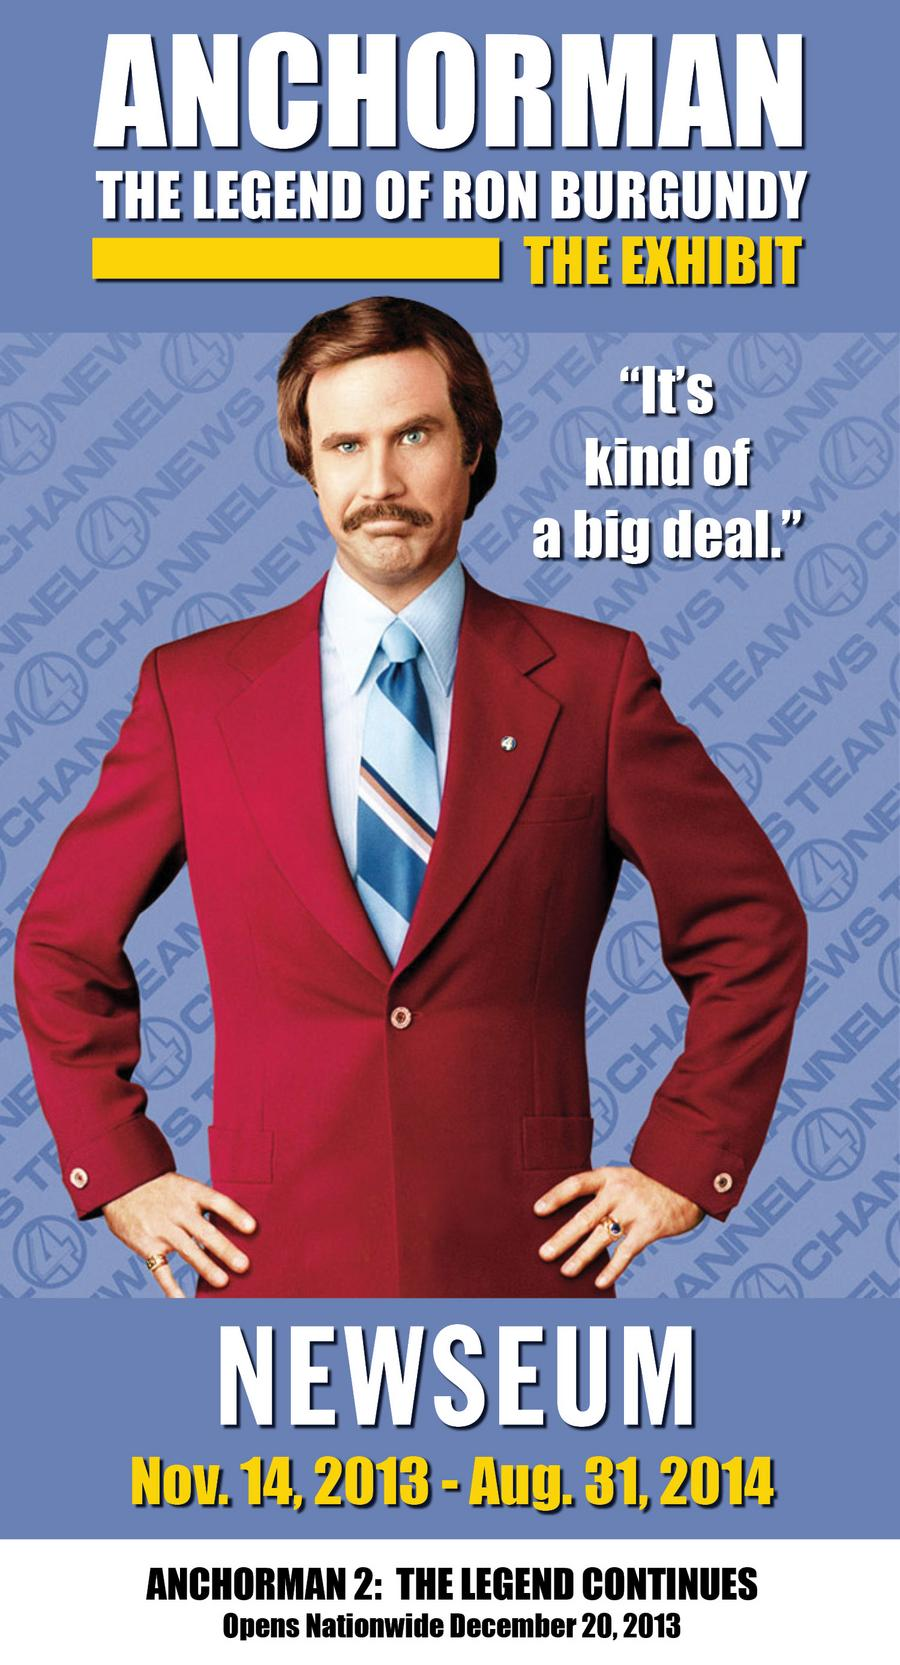 Stay classy, Washington: 'Anchorman: The Exhibit' coming to